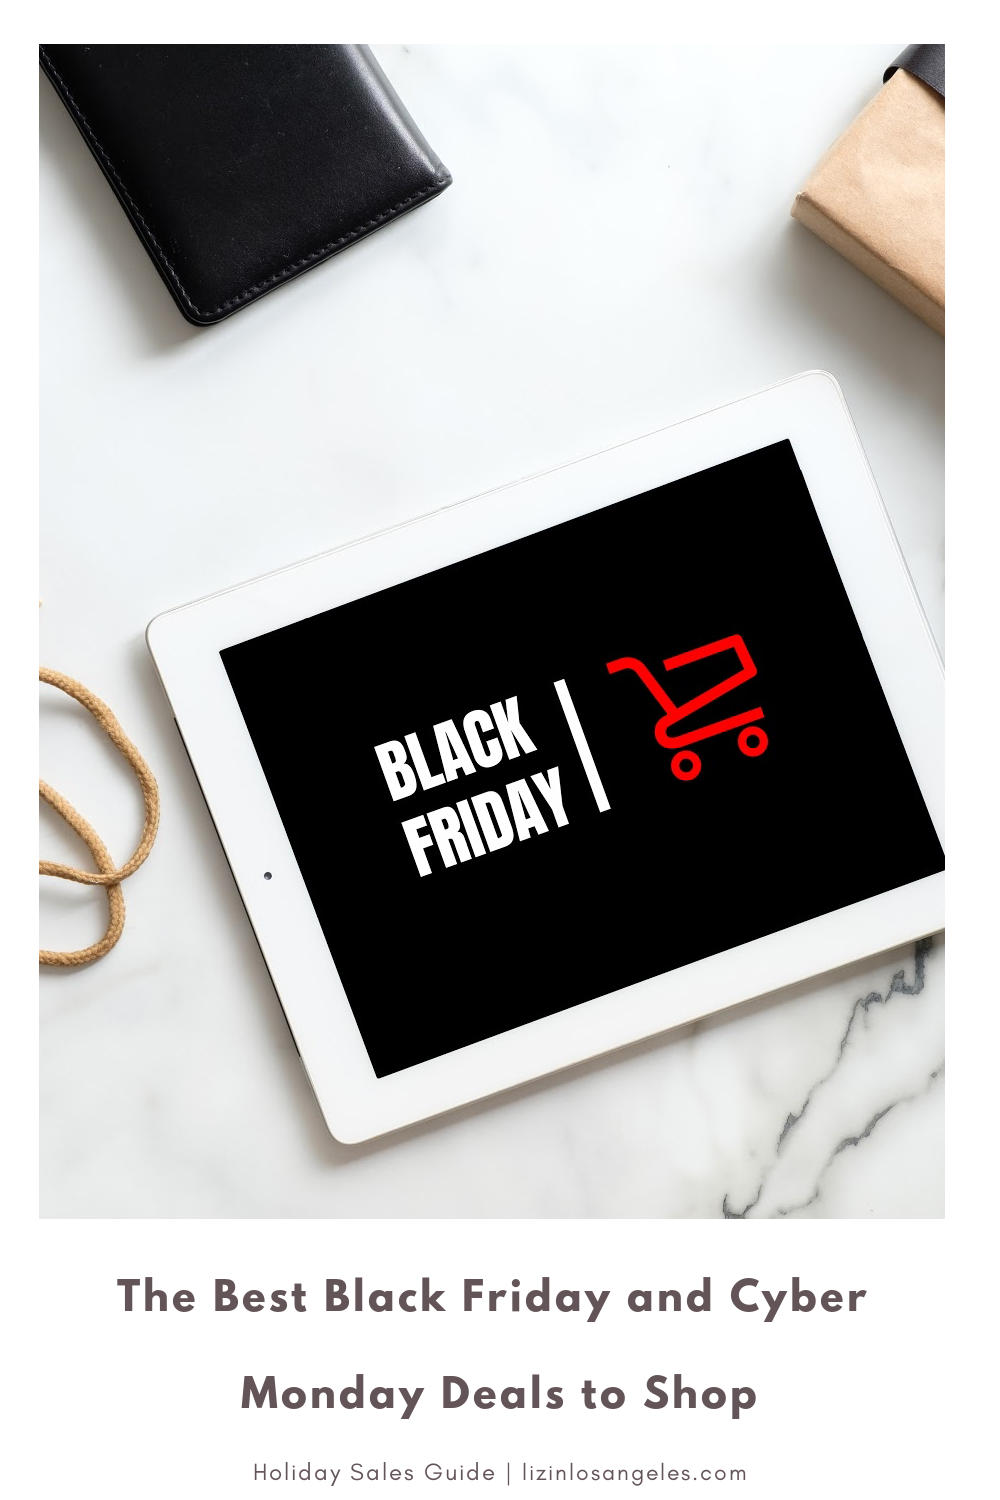 The Best Black Friday and Cyber Monday Deals to Shop, a blog post by Liz in Los Angeles, top Los Angeles lifestyle blogger, an image of iPad with Black Friday sale sign